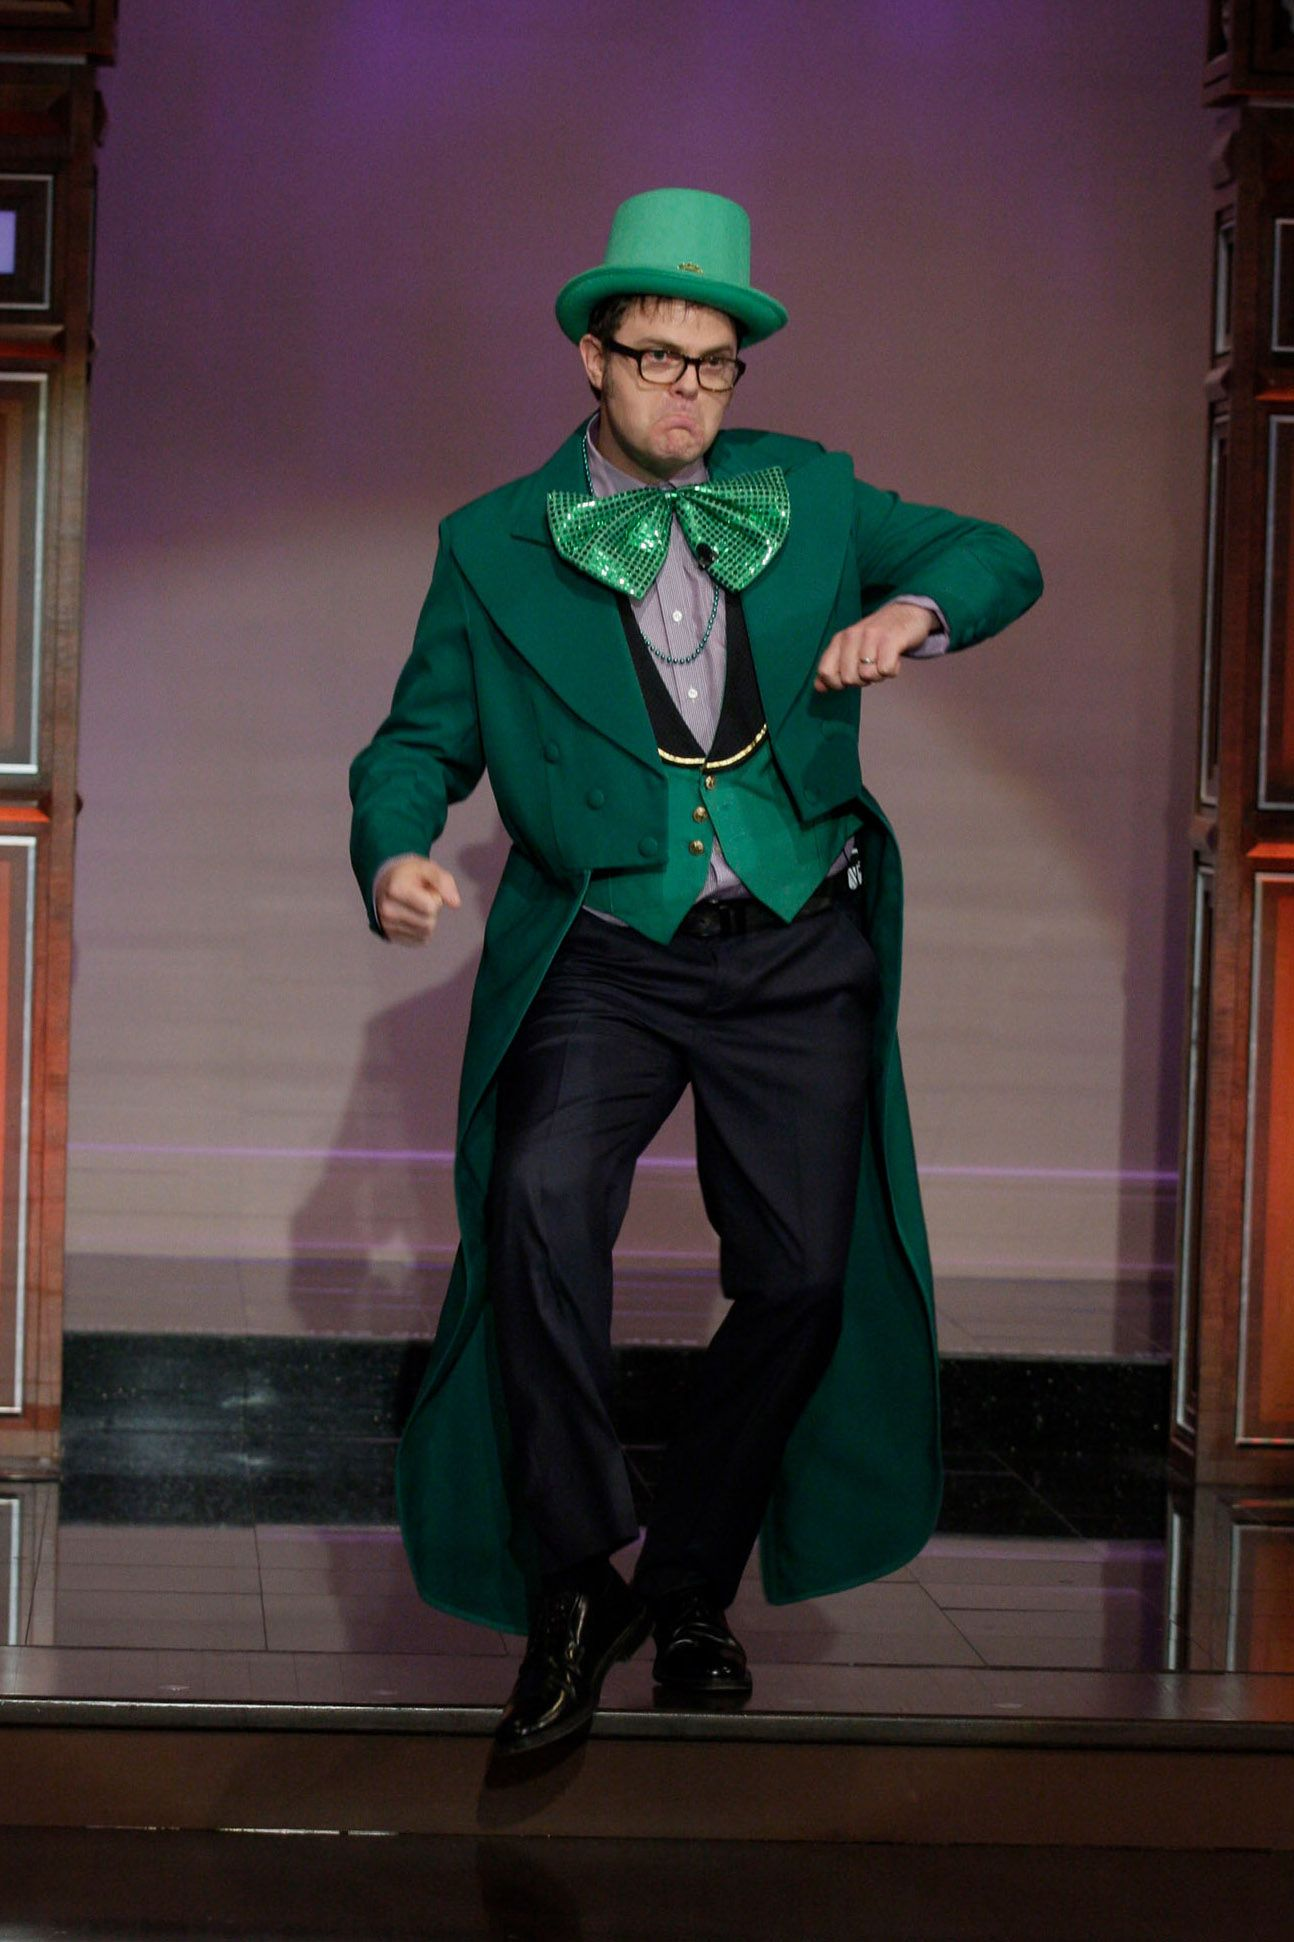 Rainn Wilson dressed as a leprechaun on the Tonight Show with Jay Leno in 2011.